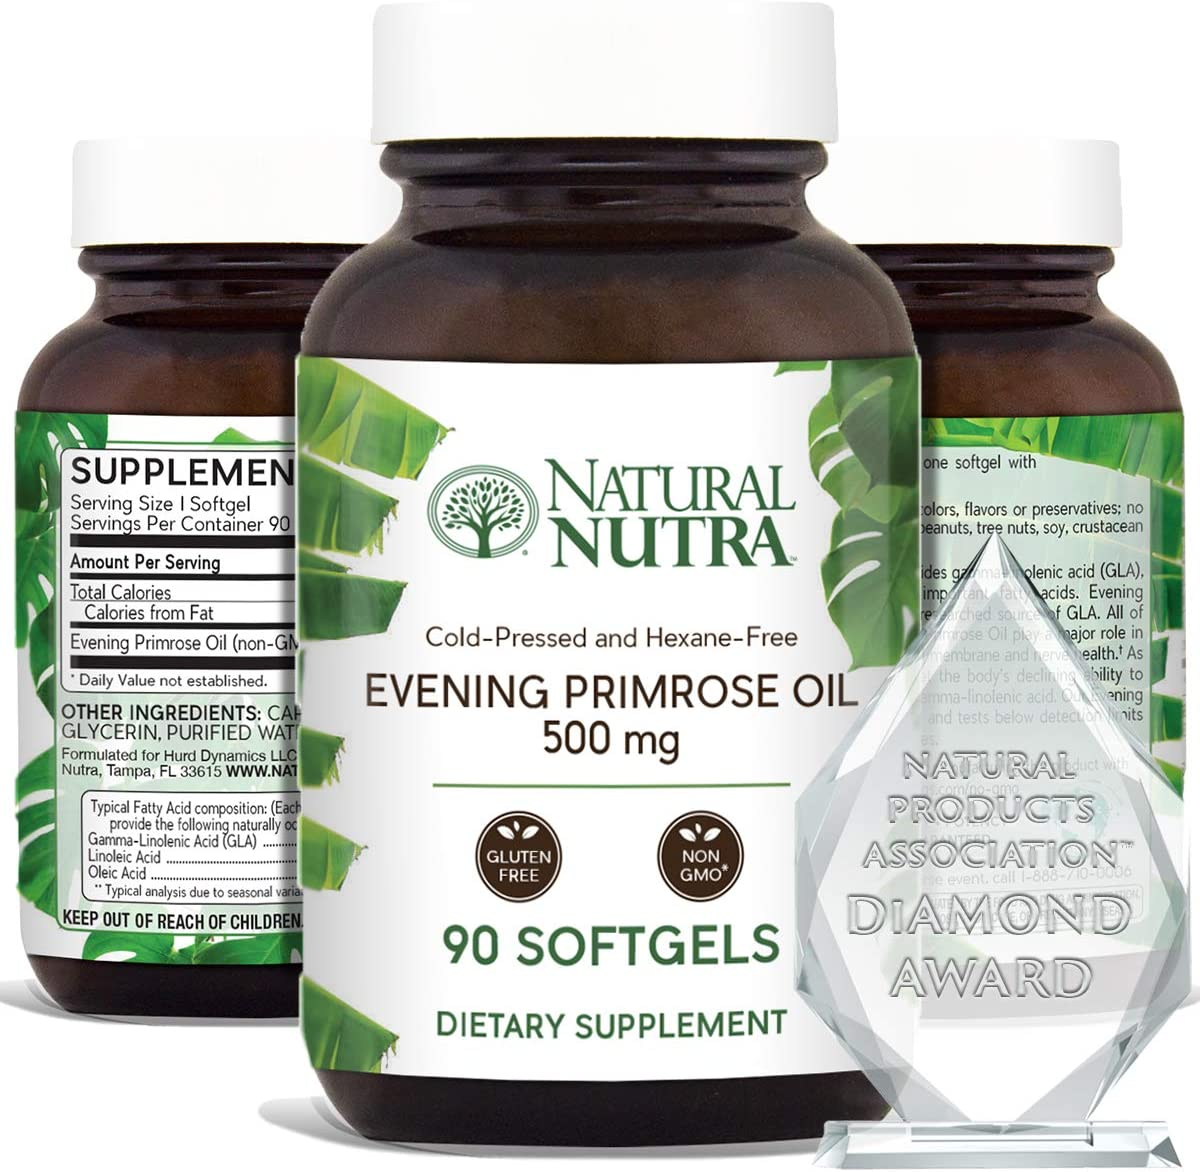 Natural Nutra Evening Primrose Oil Supplement from Fatty Acid